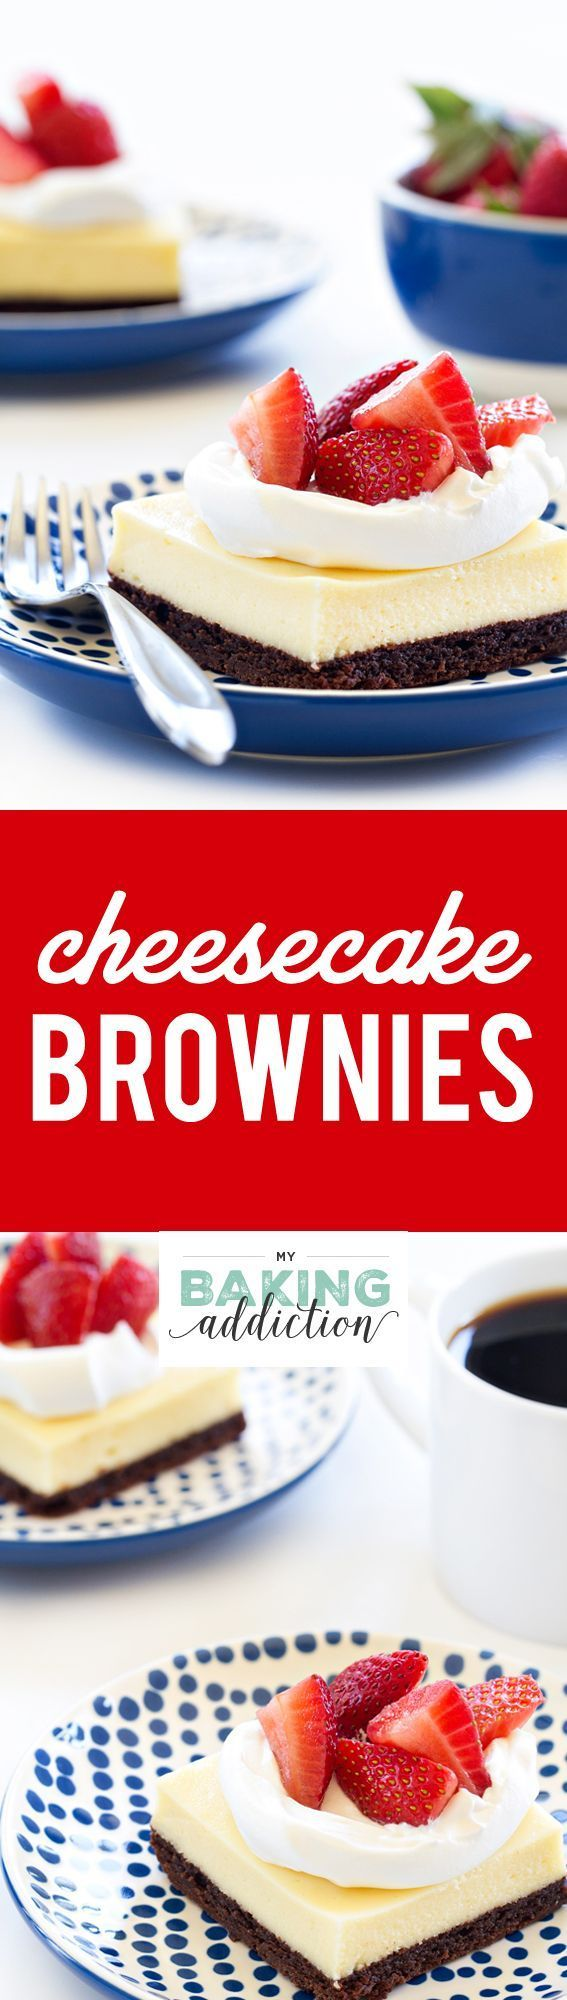 Cheesecake Brownies are everything you love about cheesecake, but with a fudgy brownie bottom. Serve them with fresh berries for a truly beautiful and delicious dessert.